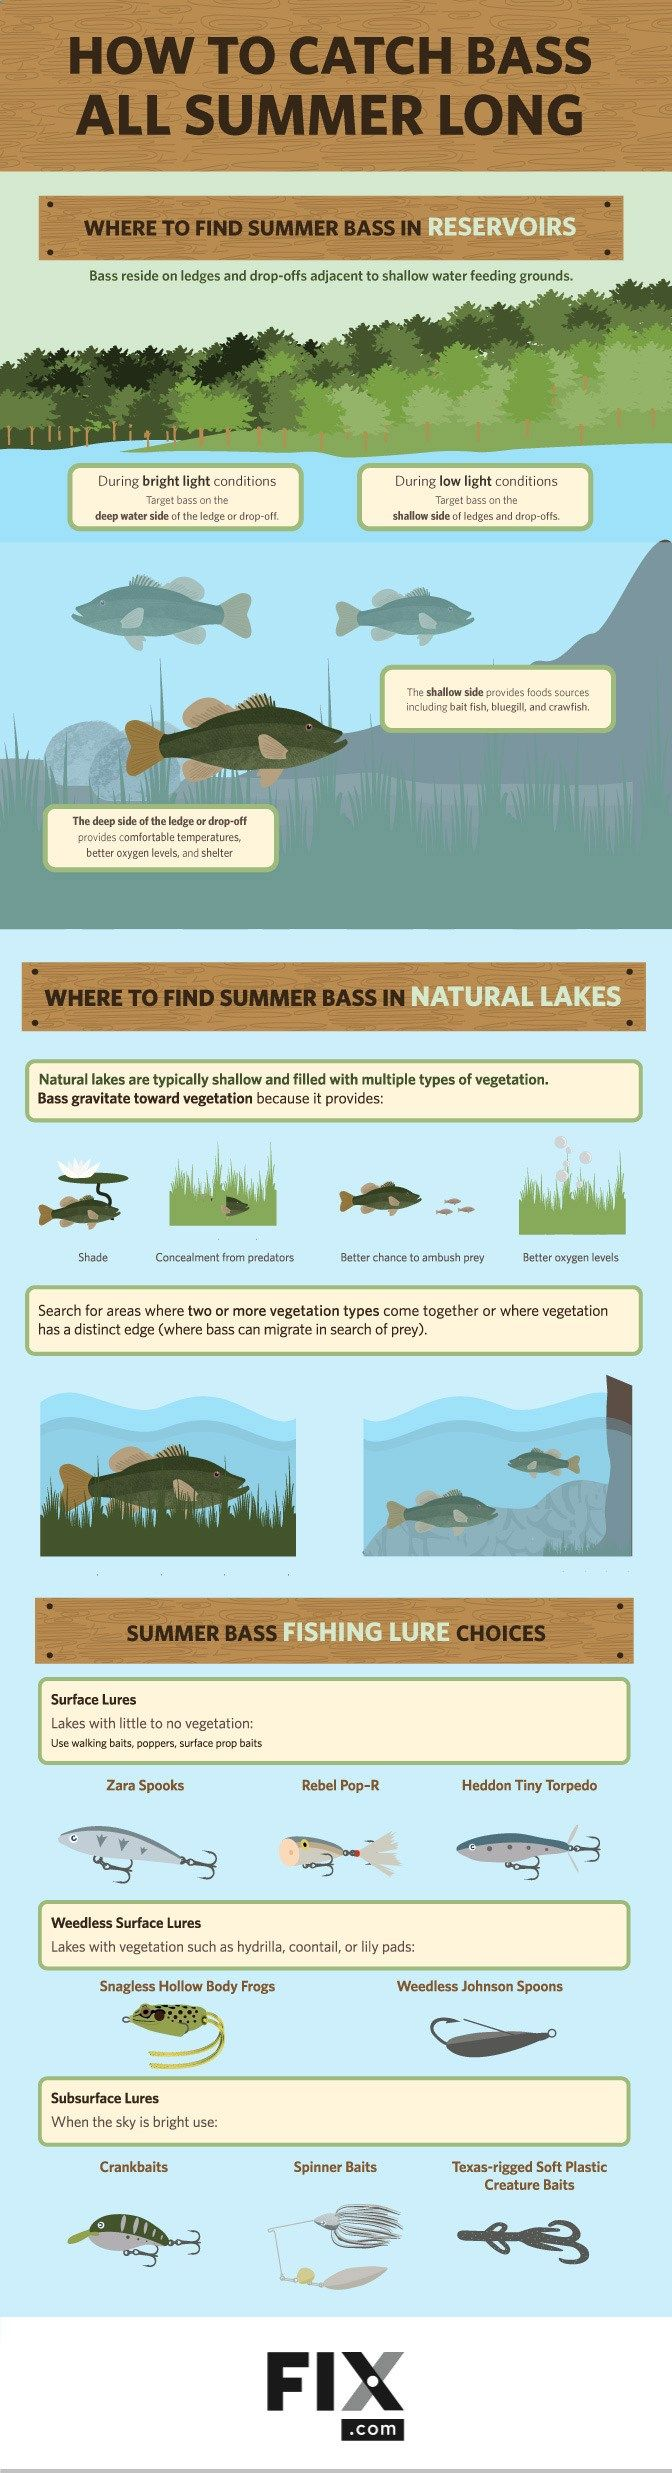 Fishing Trip - Bass are predictable and easy to target in the summer months. Comprehending their behavior and understanding how to target them are key to catching bass all season long.